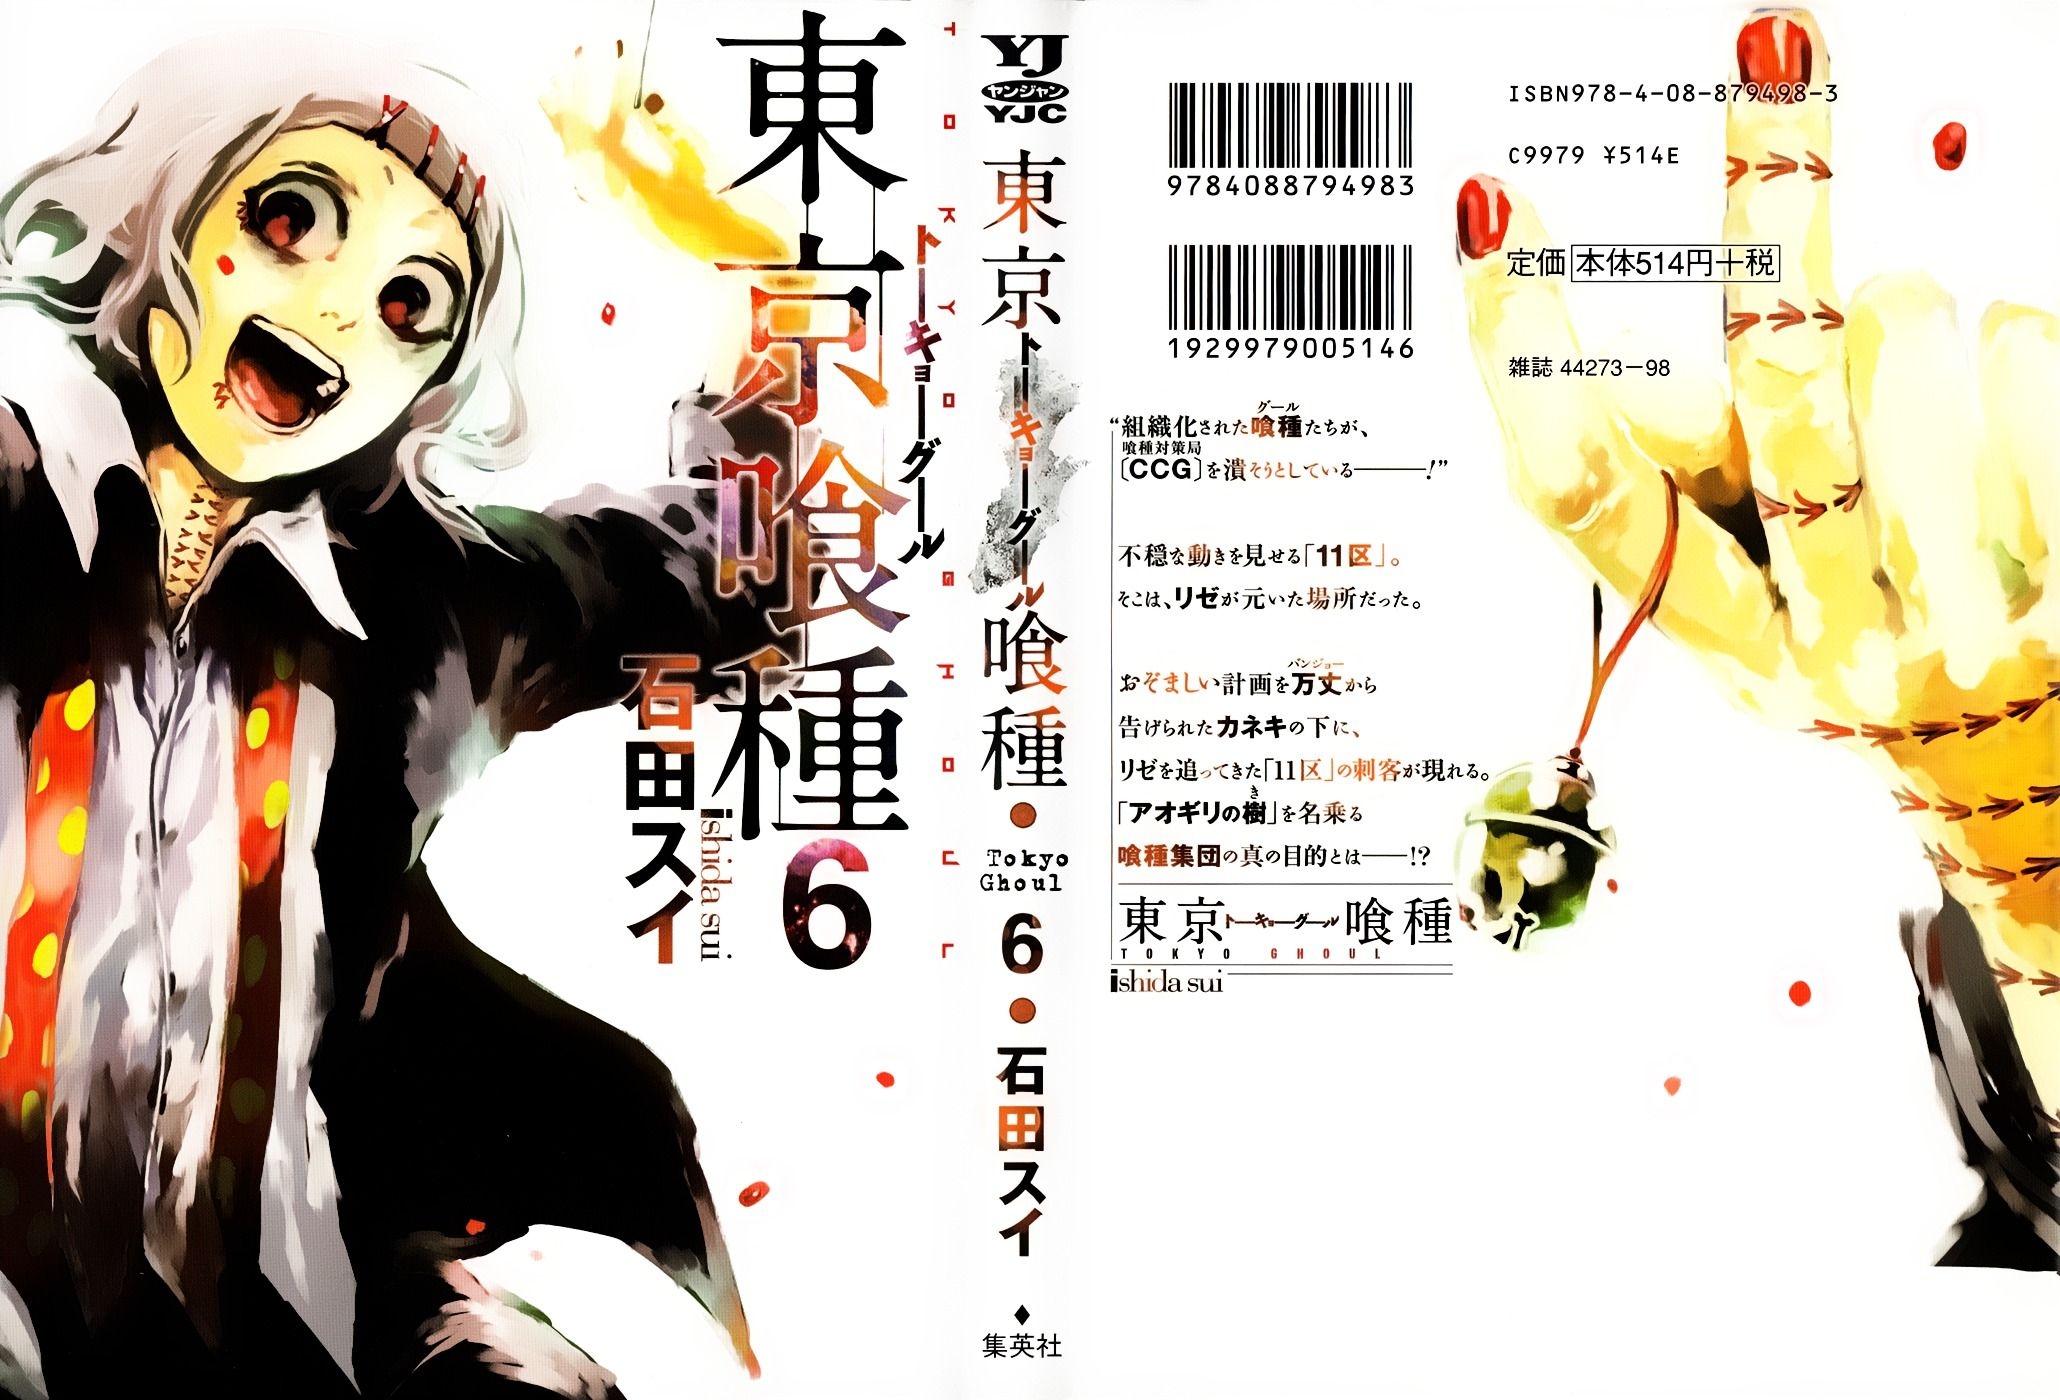 Tokyo Ghoul Vol 6 Ch 49 Stream 2 Edition 1 Page 10 1 Mangapark Read Online For Free Tokyo Ghoul Manga Tokyo Ghoul Anime Tokyo Ghoul Books